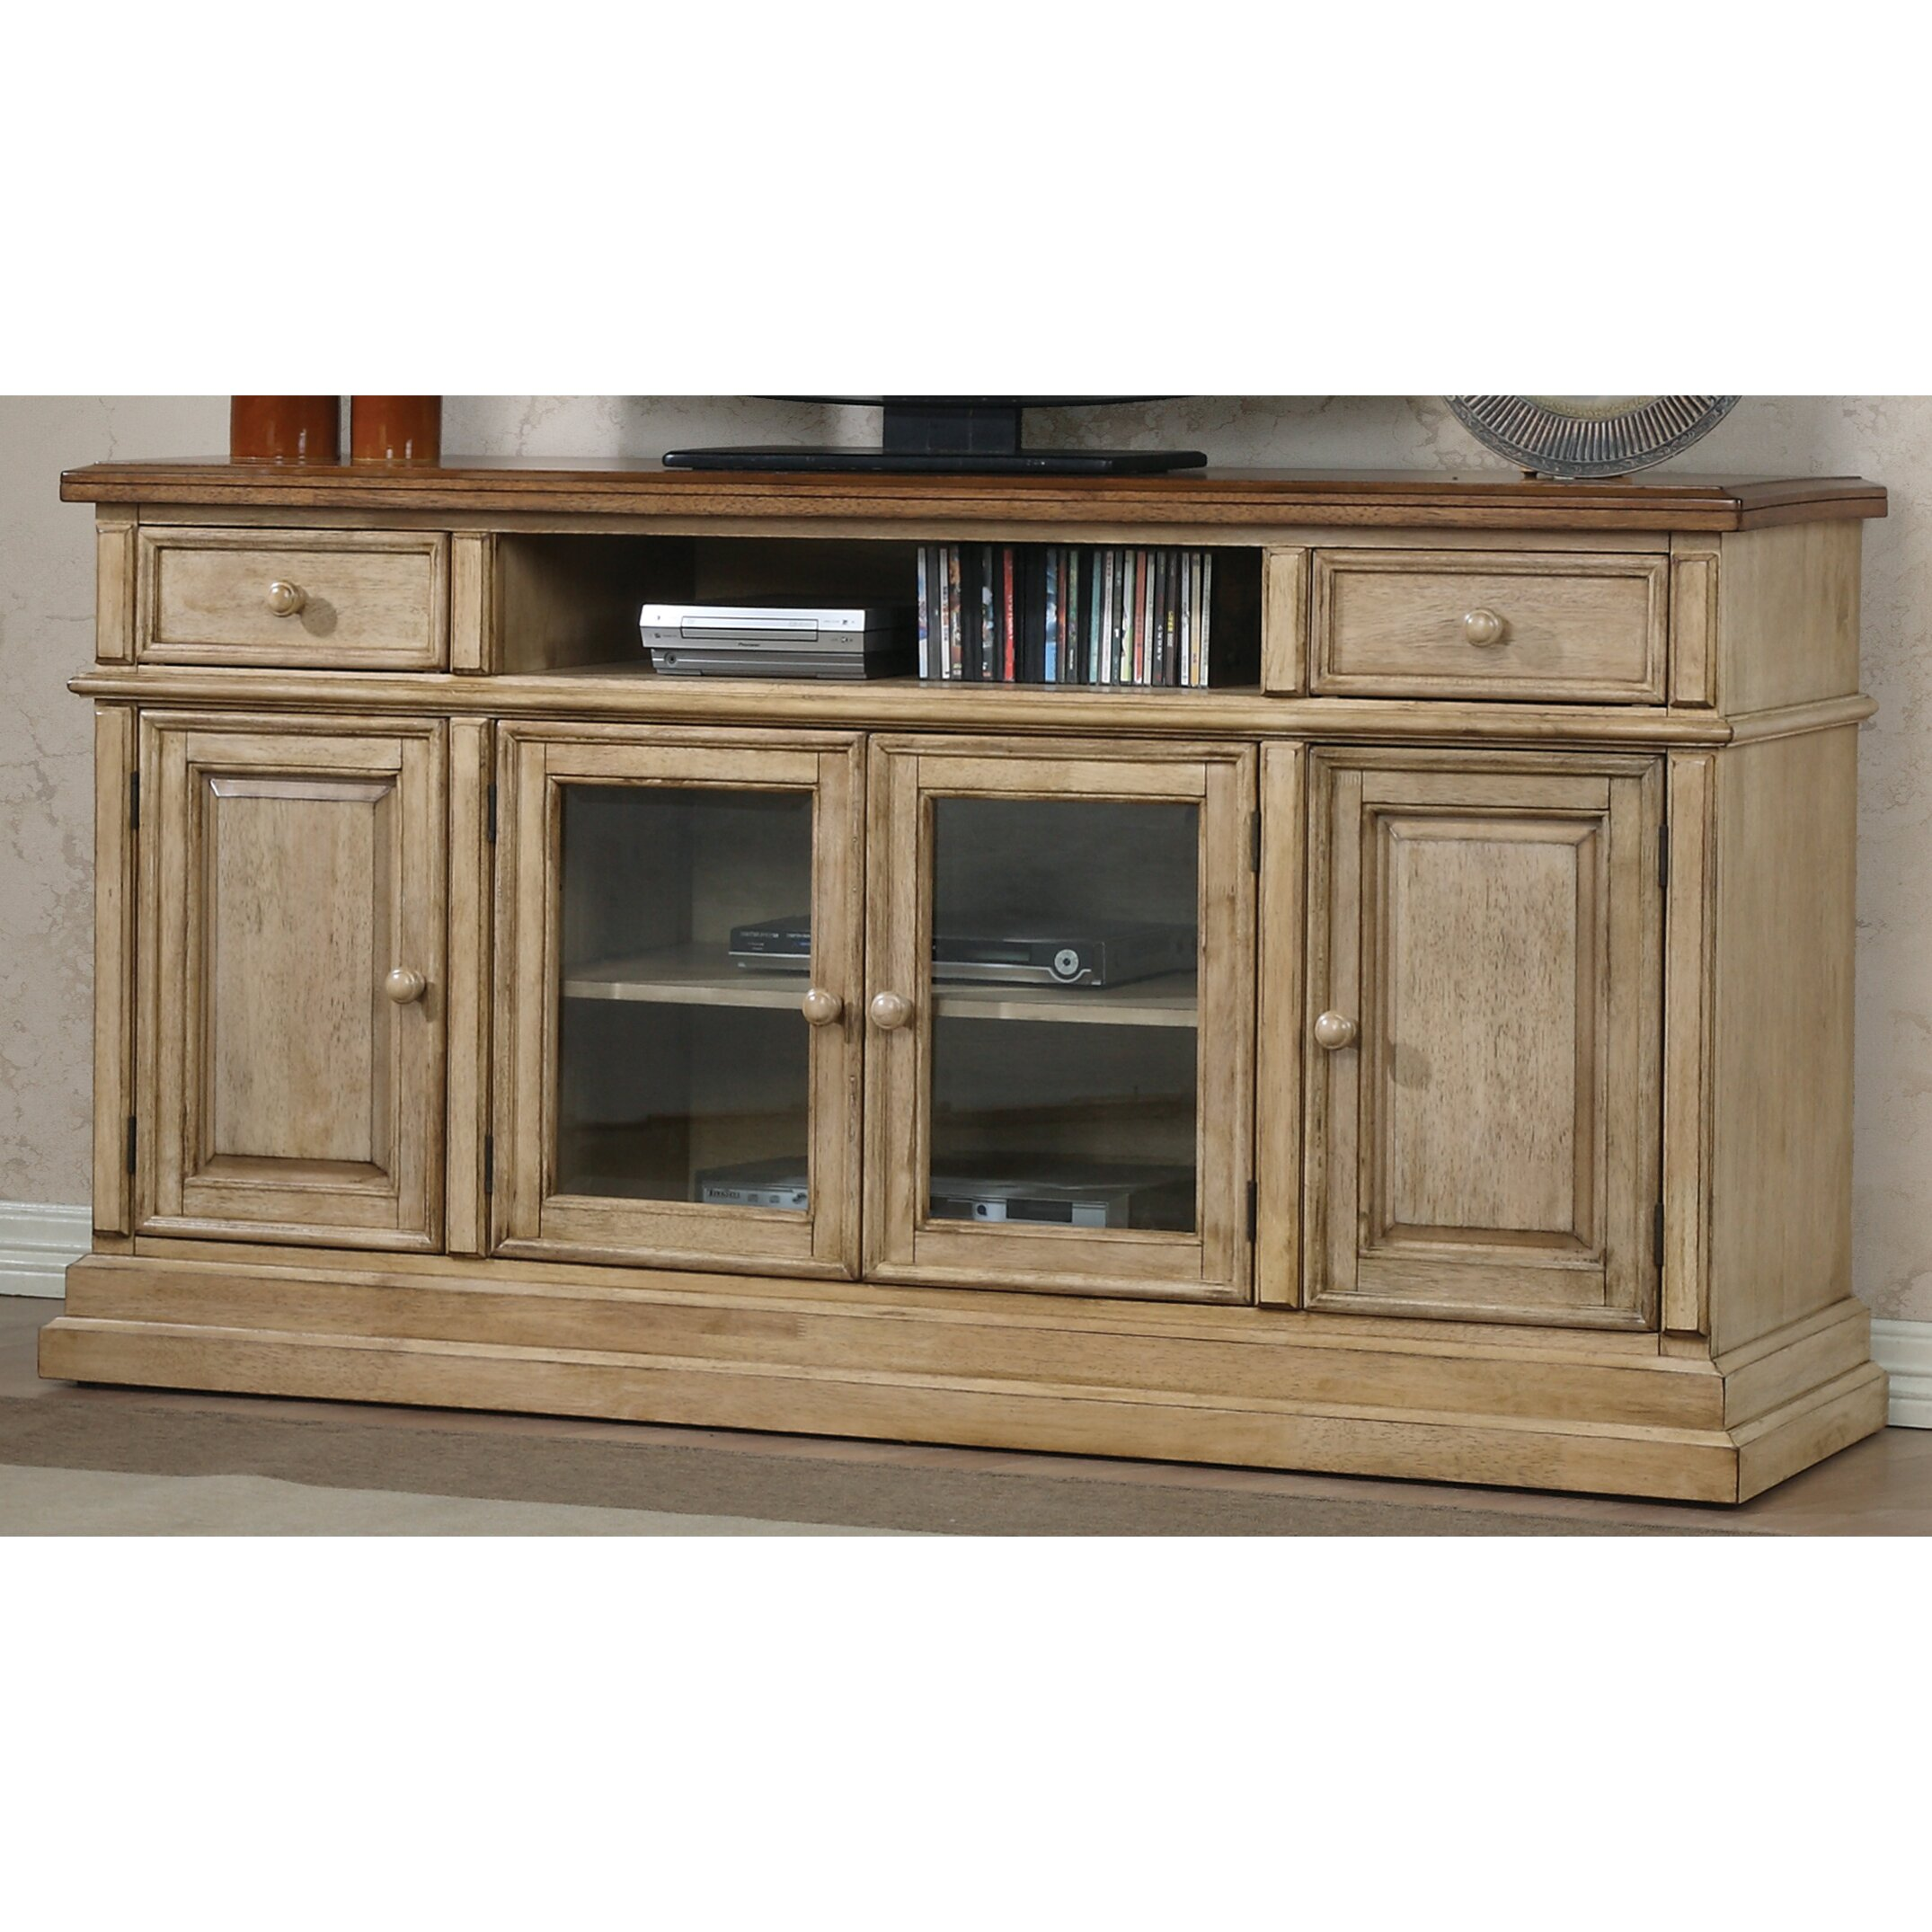 Darby home co ivesdale 65 media tv stand reviews wayfair Tv media stands